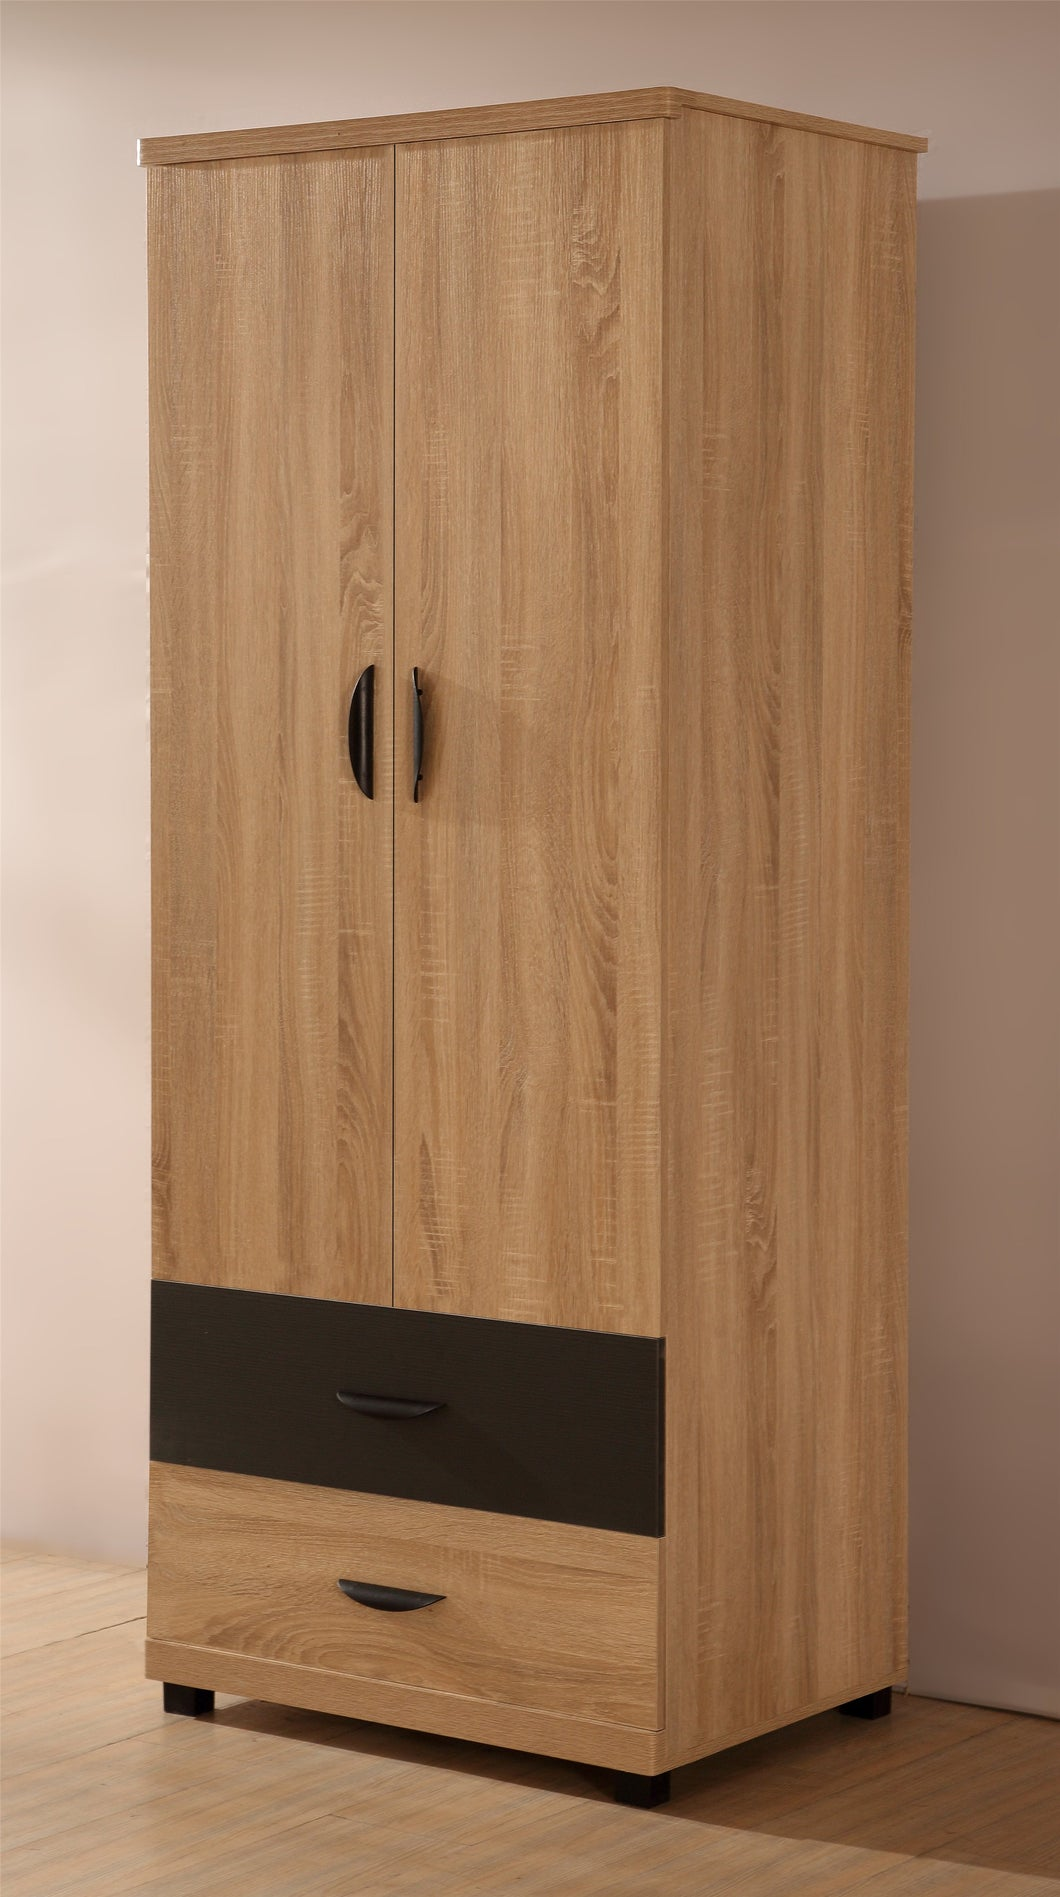 PACIFIC 2 Door + 2 Drawer Plain Wardrobe in Somano Oak & Grey Ash - Blakes Discounts